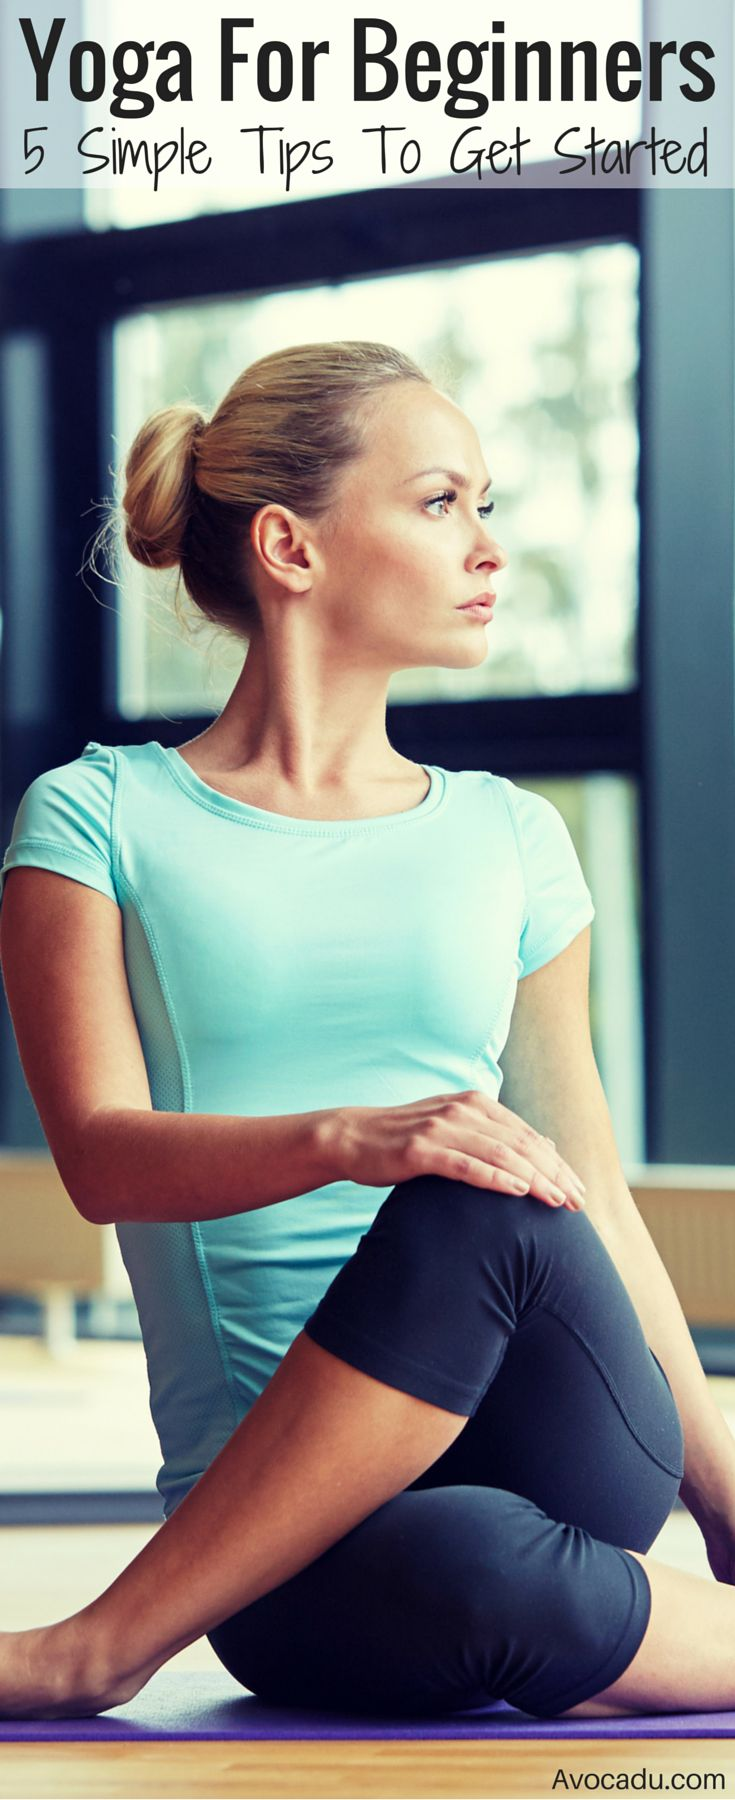 Yoga For Beginners, 5 Simple Must-Know Tips